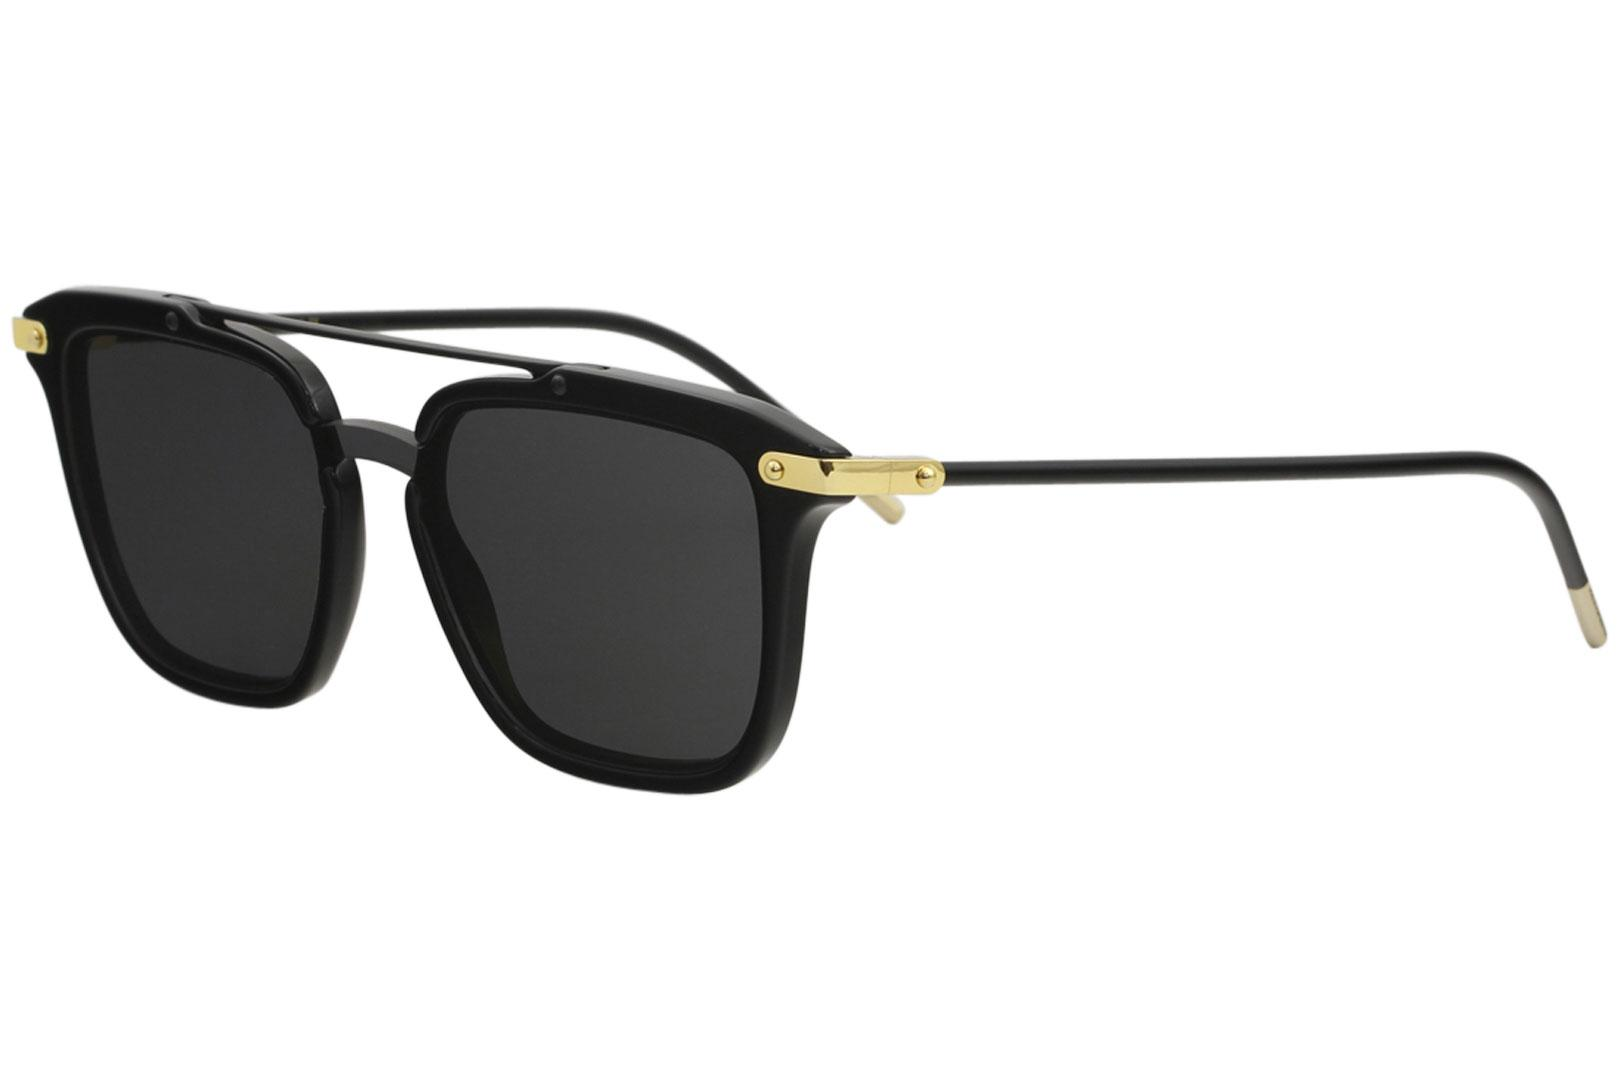 2dbaed42d994 Dolce   Gabbana Men s D G DG4327 DG 4327 Fashion Square Sunglasses by Dolce    Gabbana